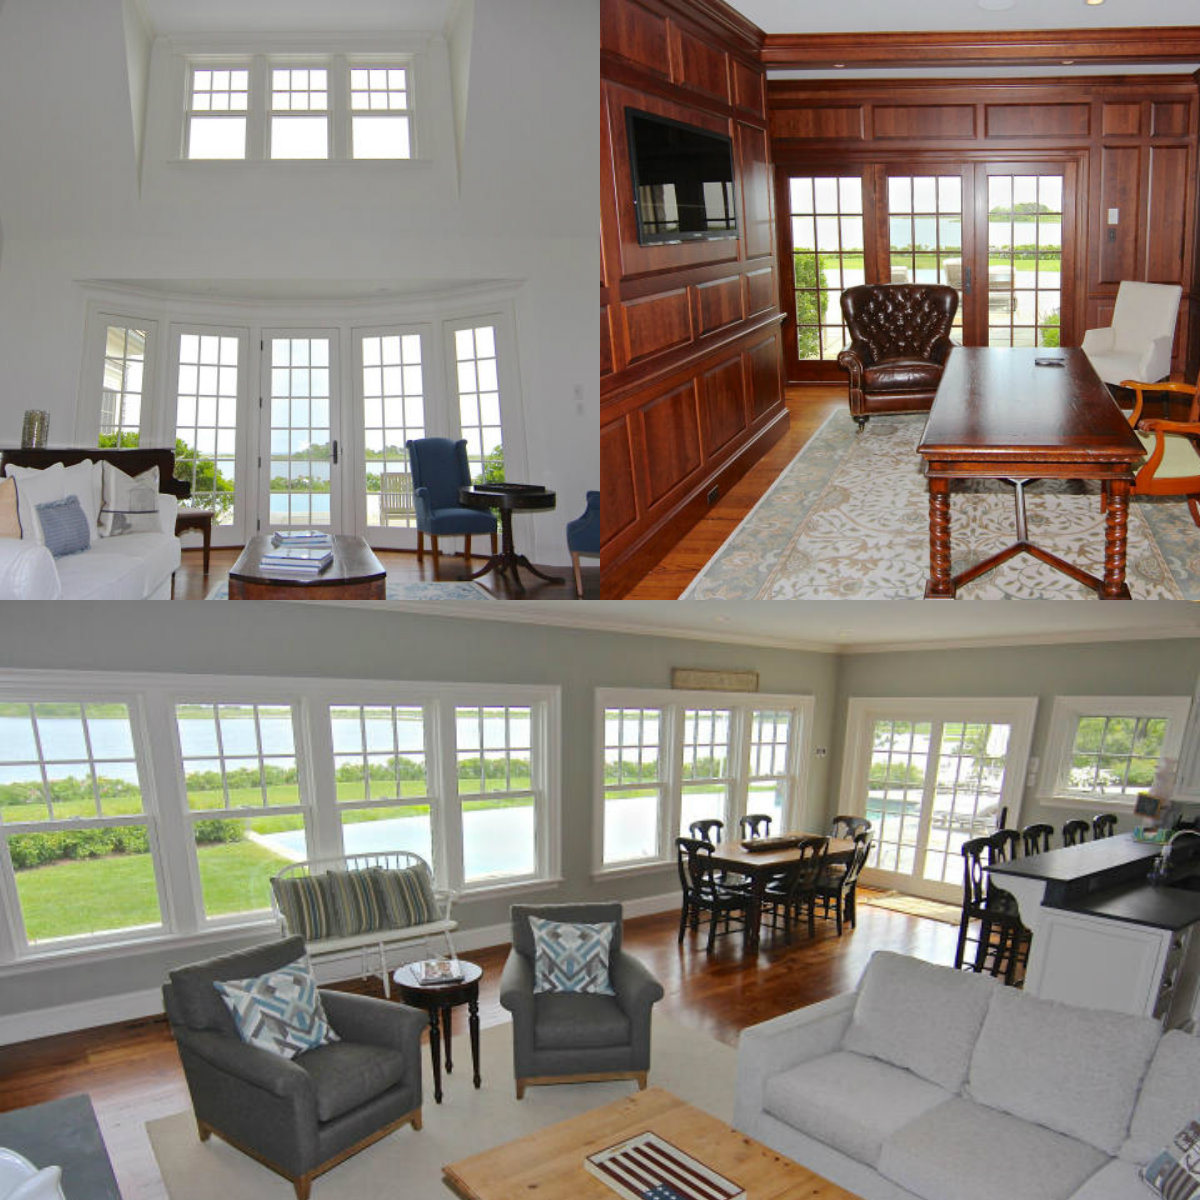 Images of rooms with windows in 96 Beach Road in Edgartown on Cape Cod MA